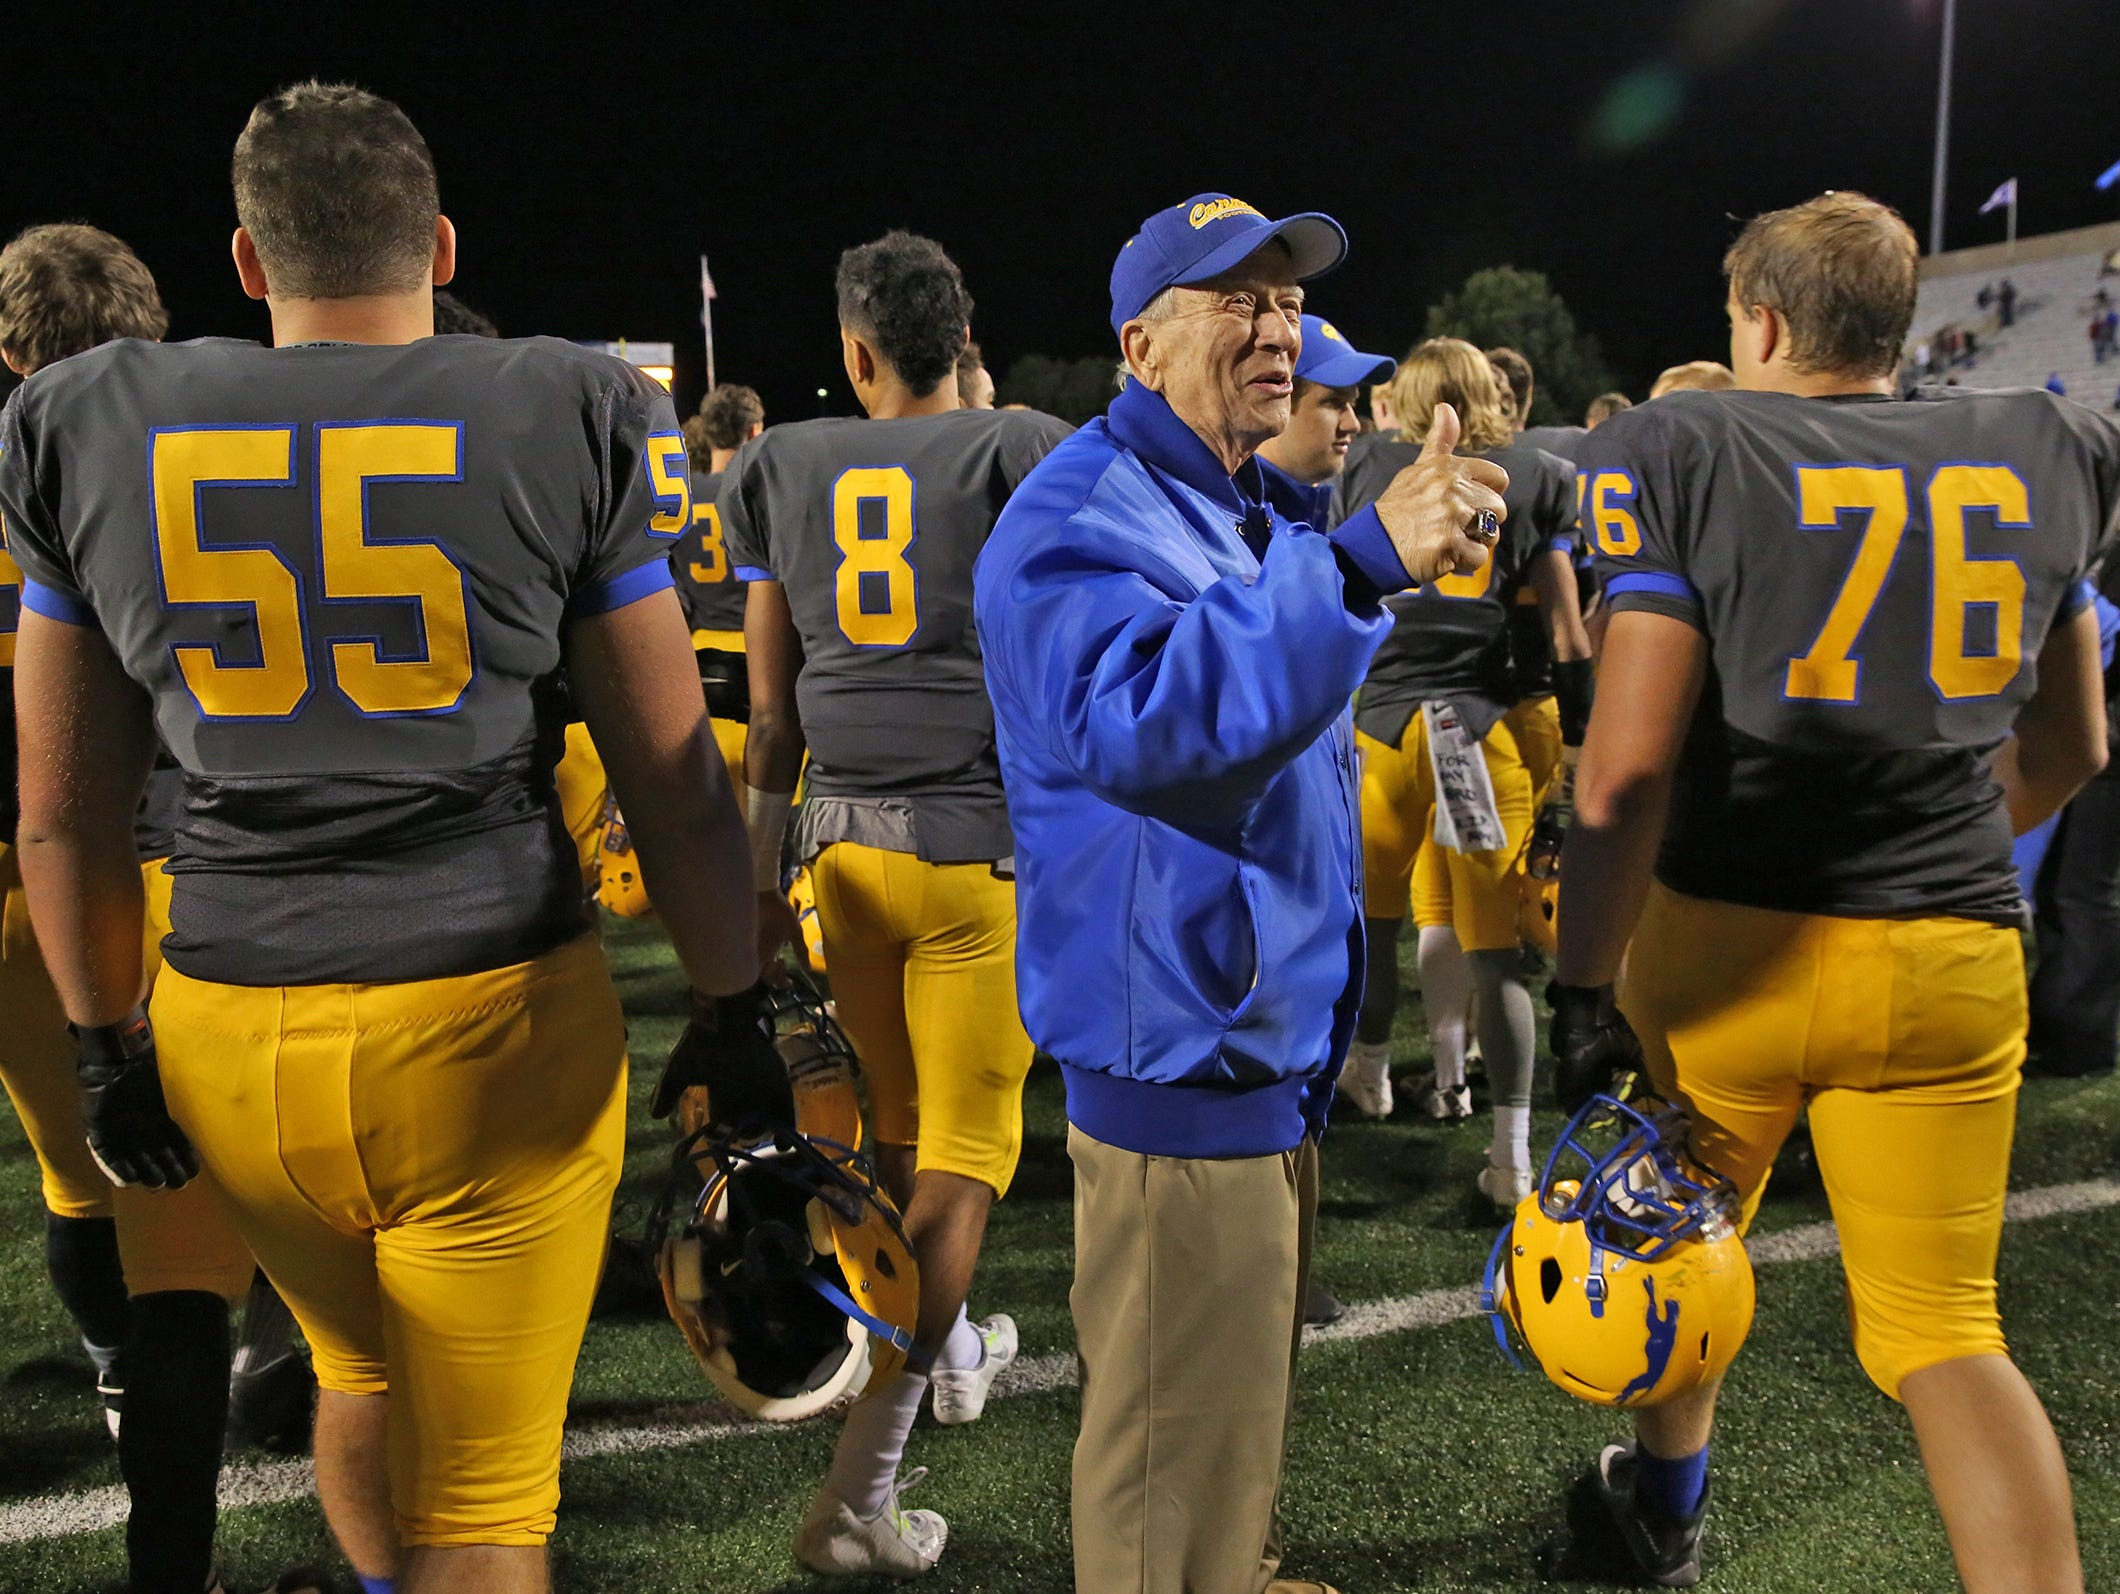 Longtime Carmel resident Jack Badger gave a thumbs up to Carmel football players after they won their game against Warren Central on Oct. 9.